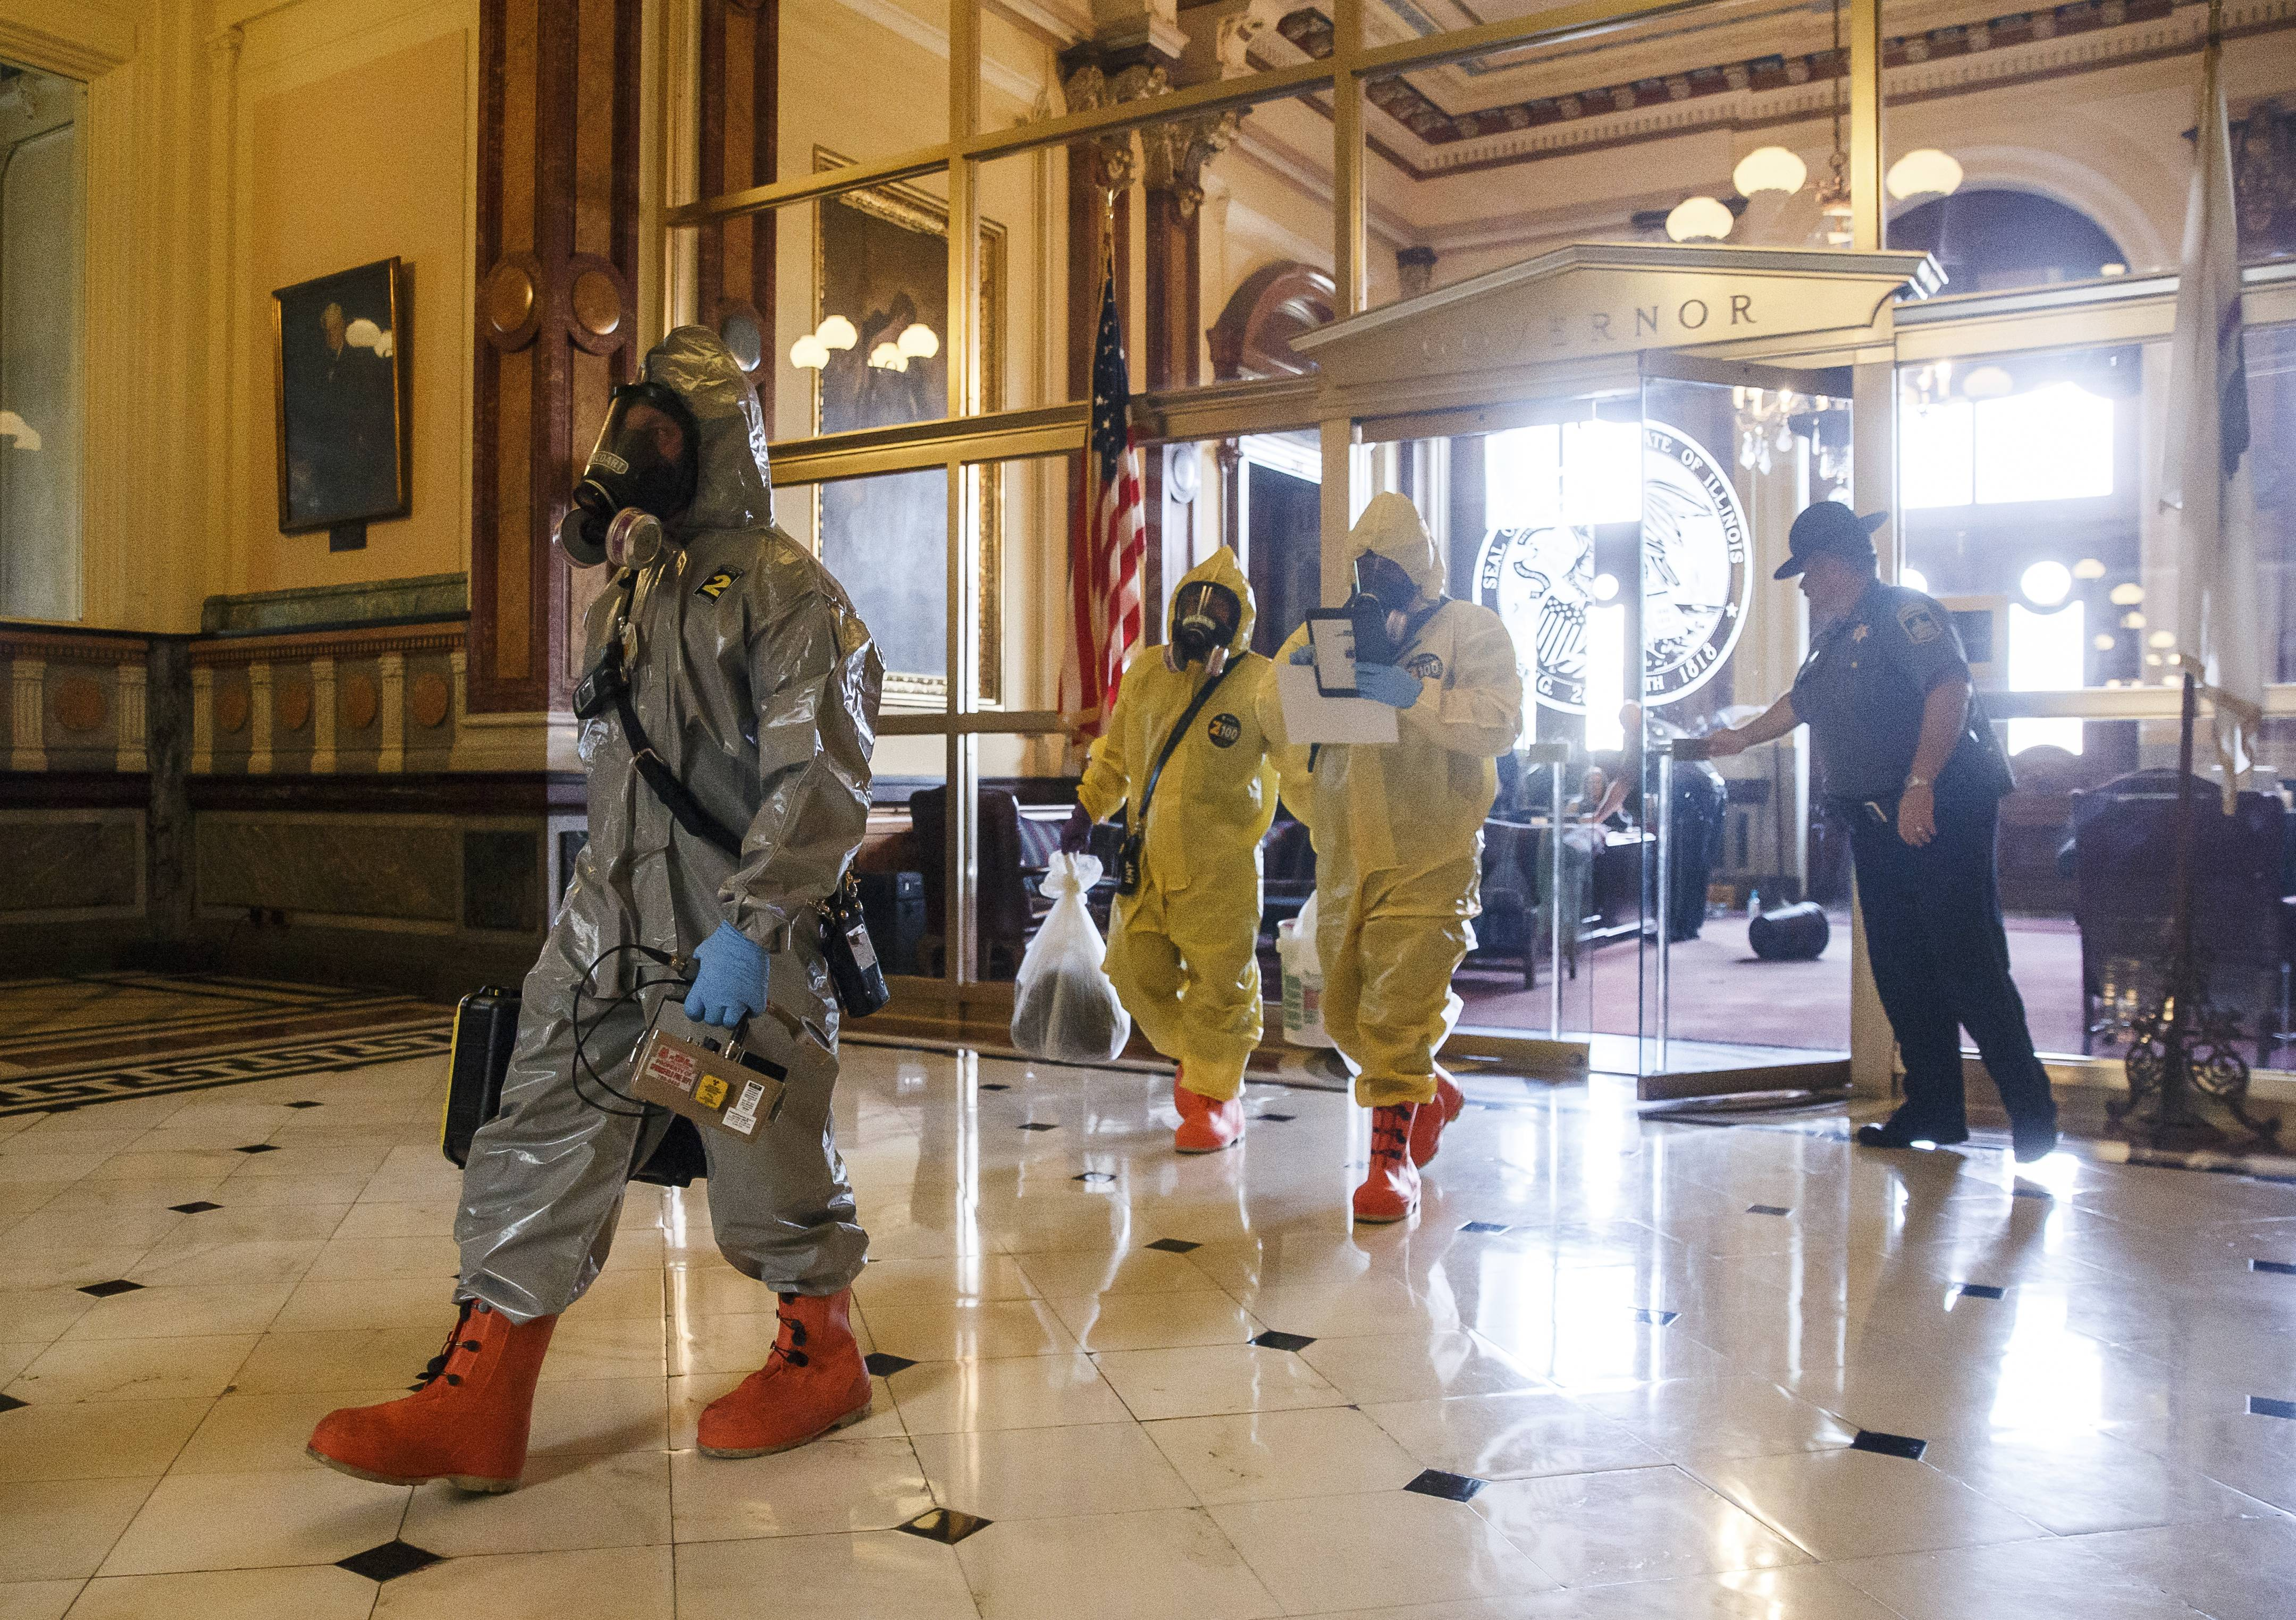 Illinois House in session after two hour hazmat delay